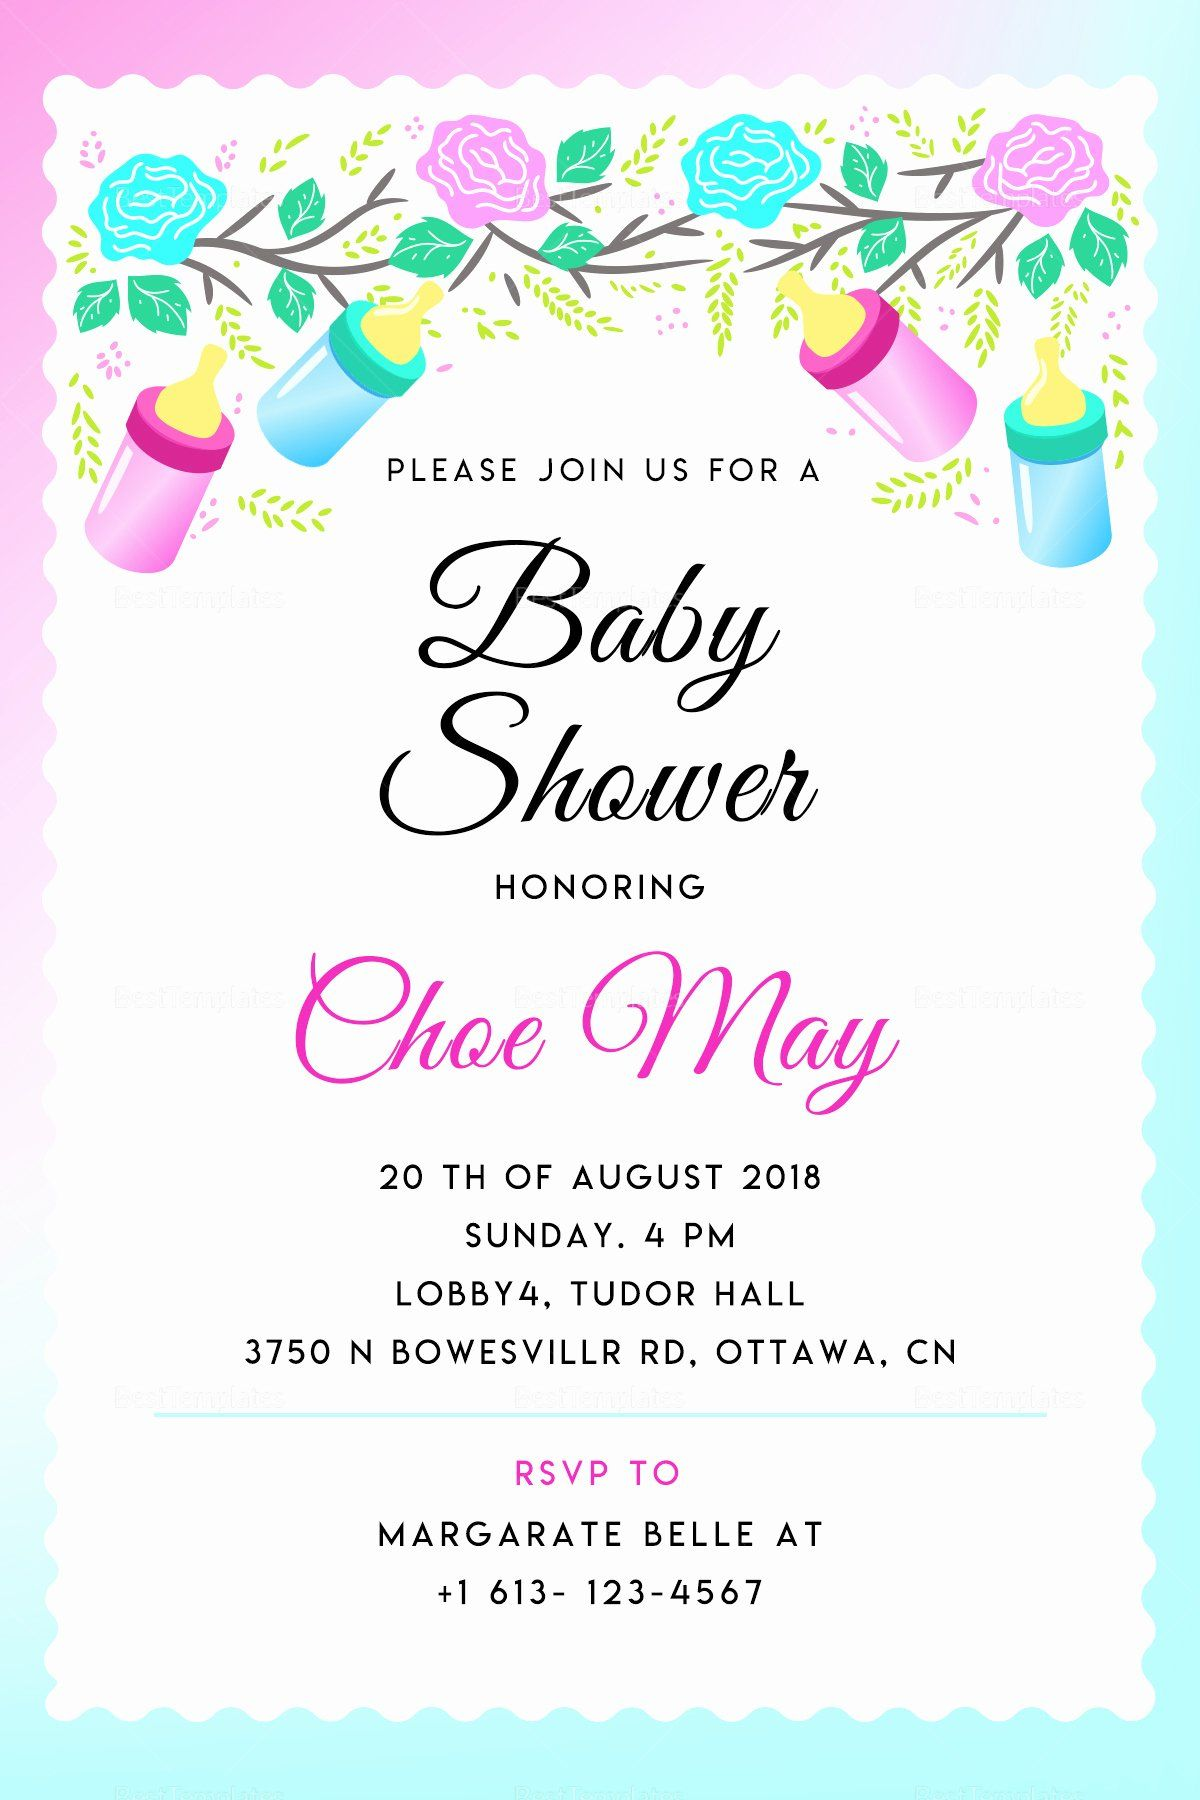 Baby Shower Invitation Template Photoshop Inspirational Editable